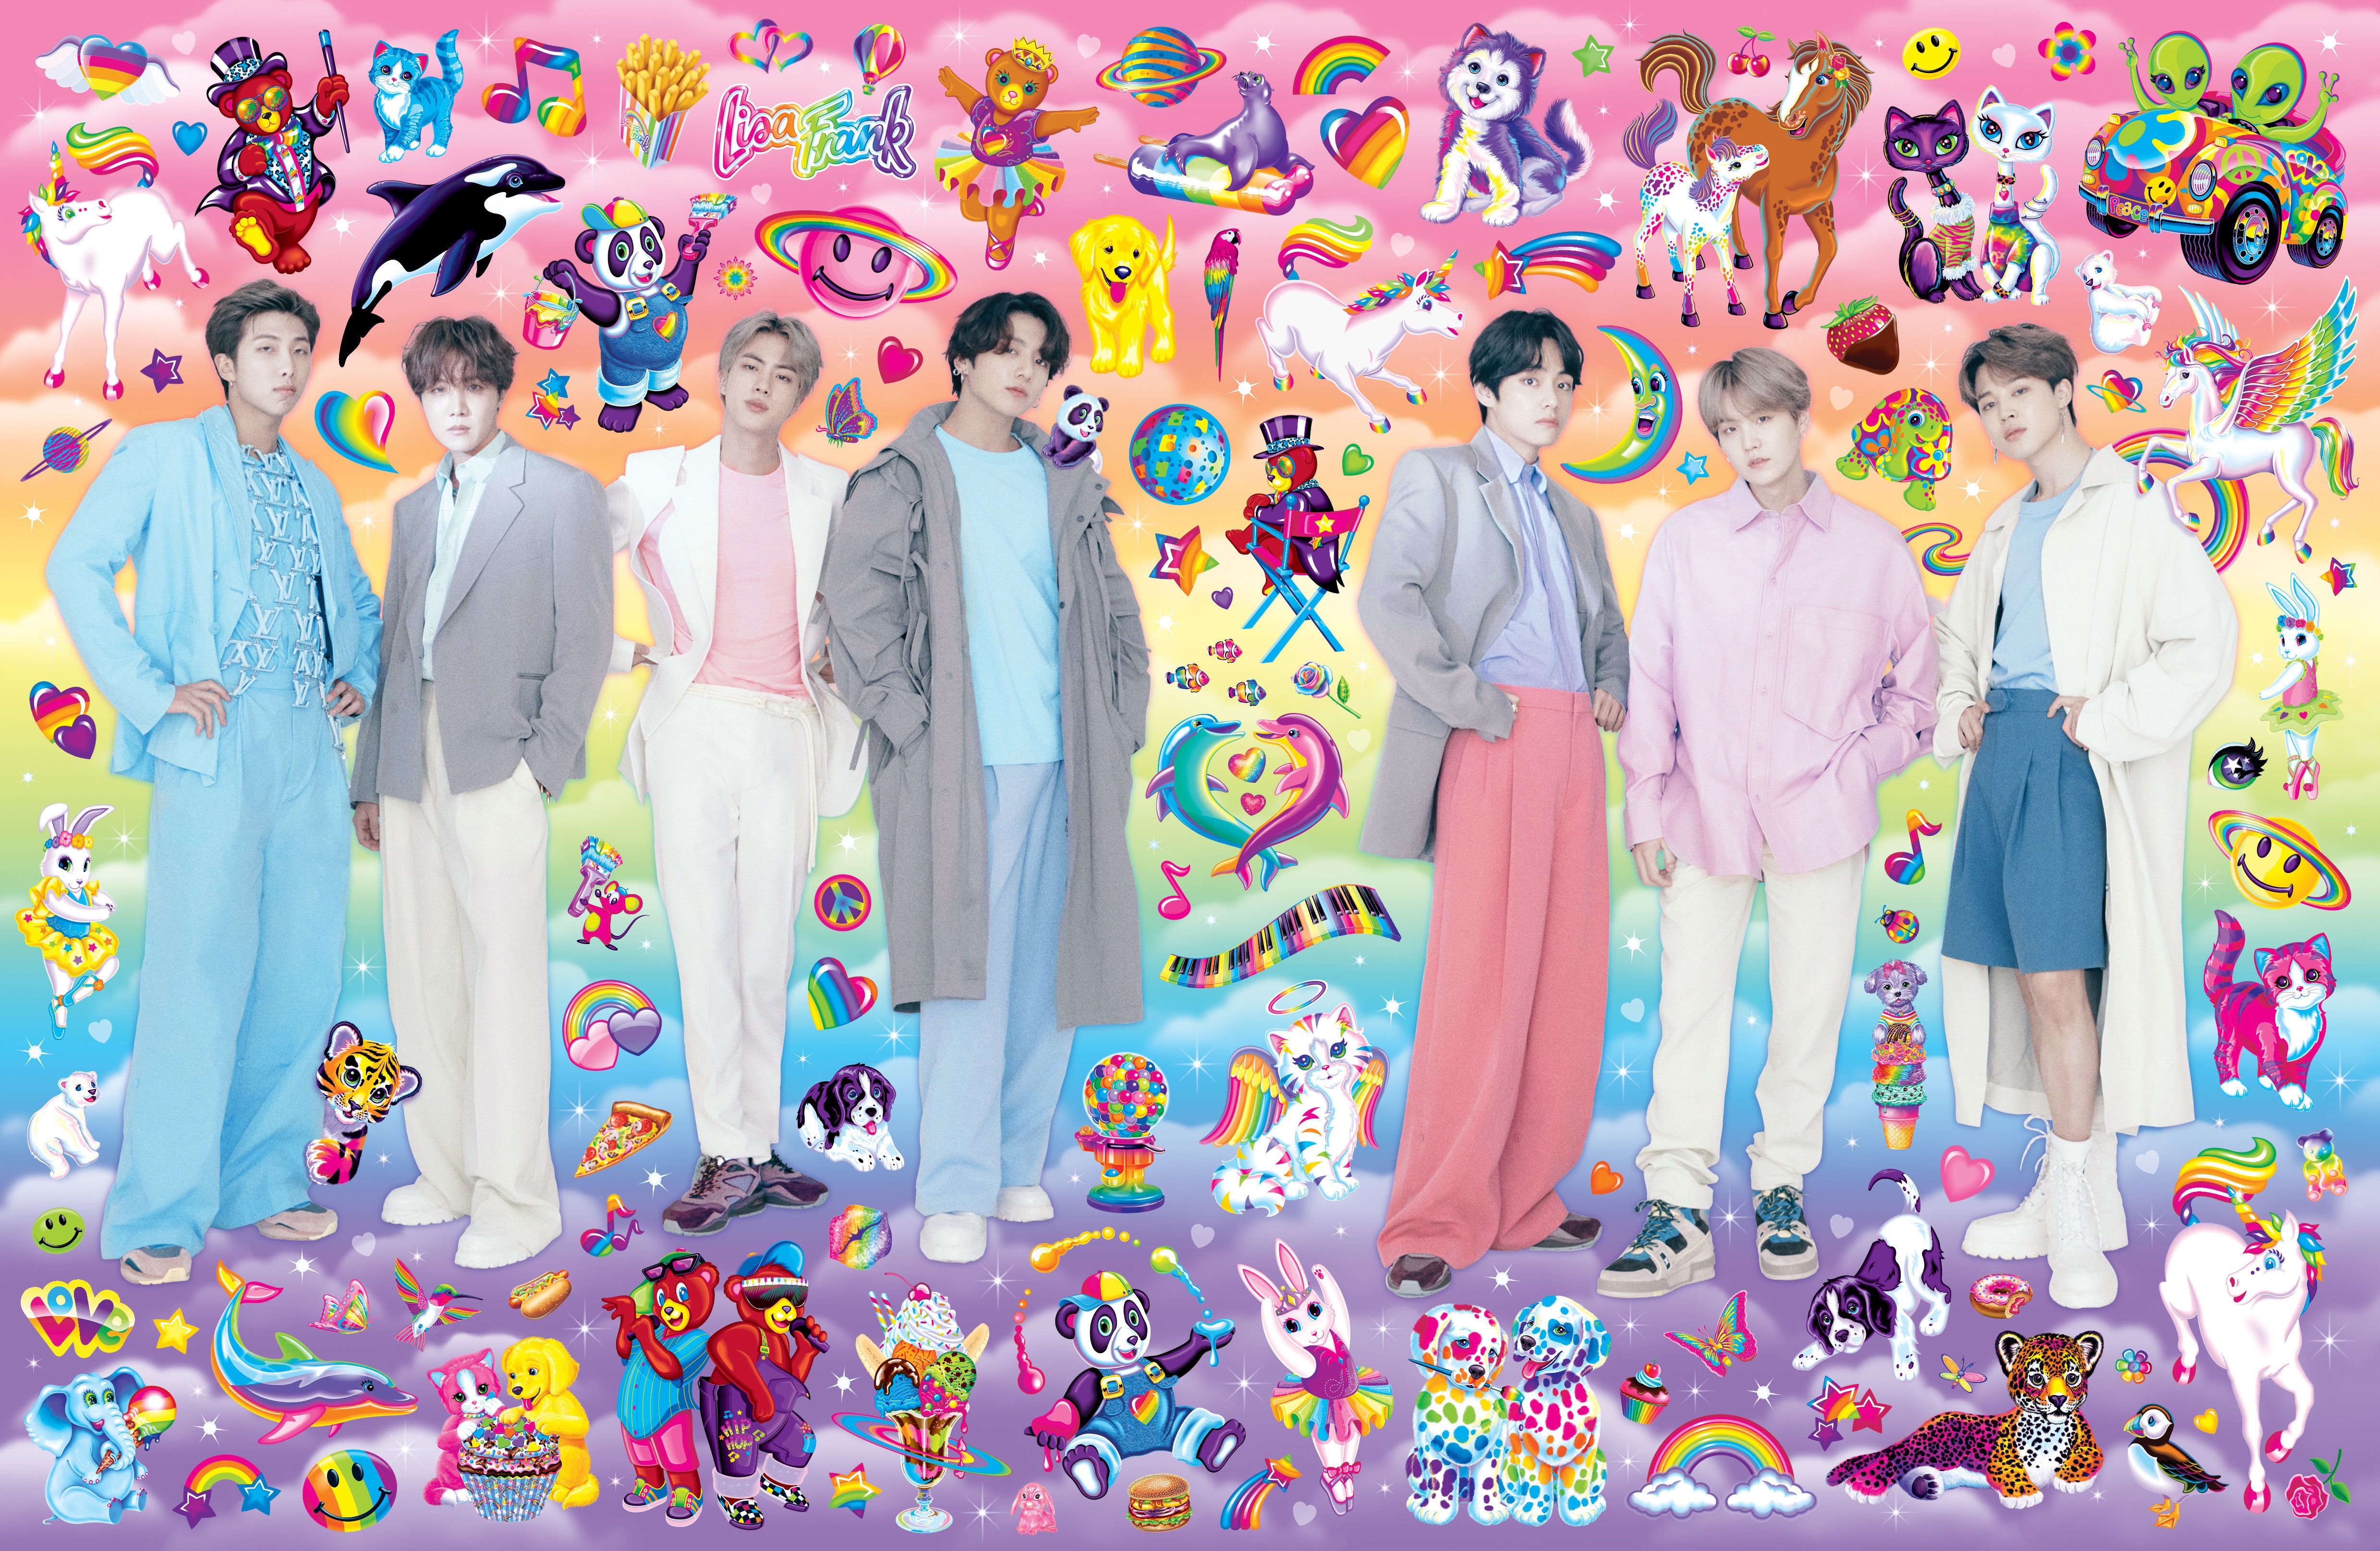 bts on the cover of paper break the internet lisa frank paper